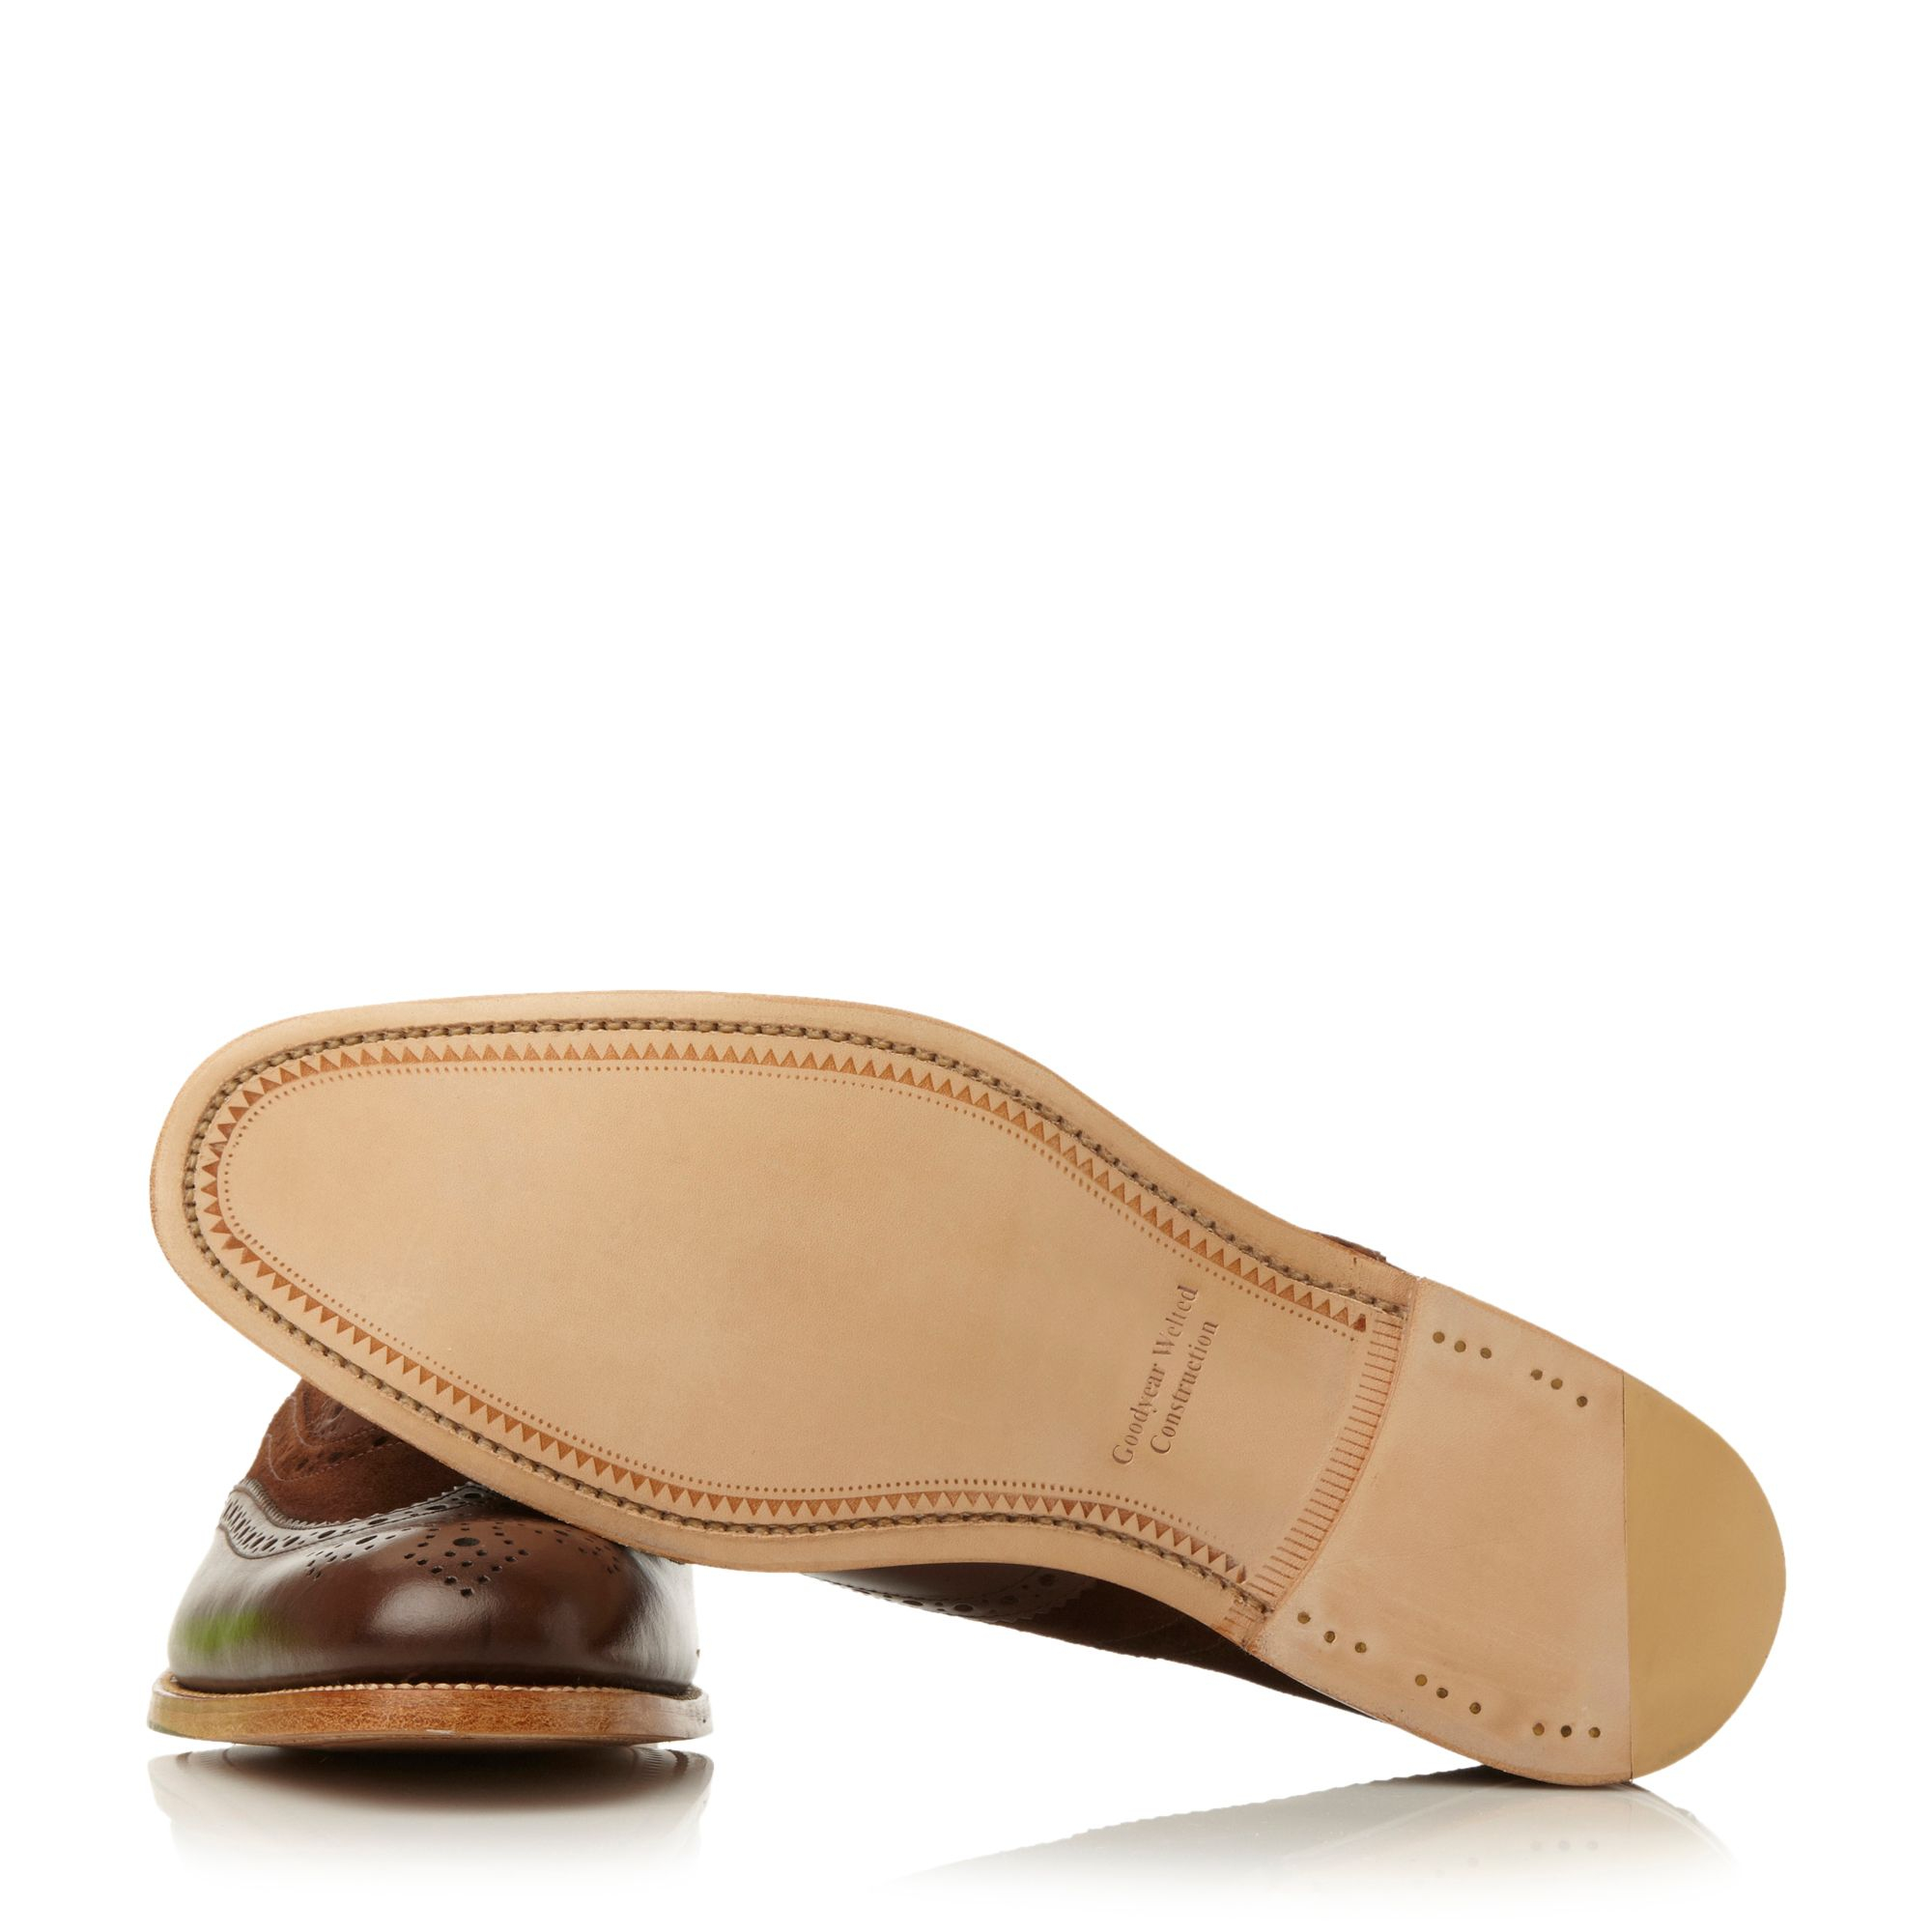 Loake Thompson Lace Up Brogues in Tan (Brown) for Men